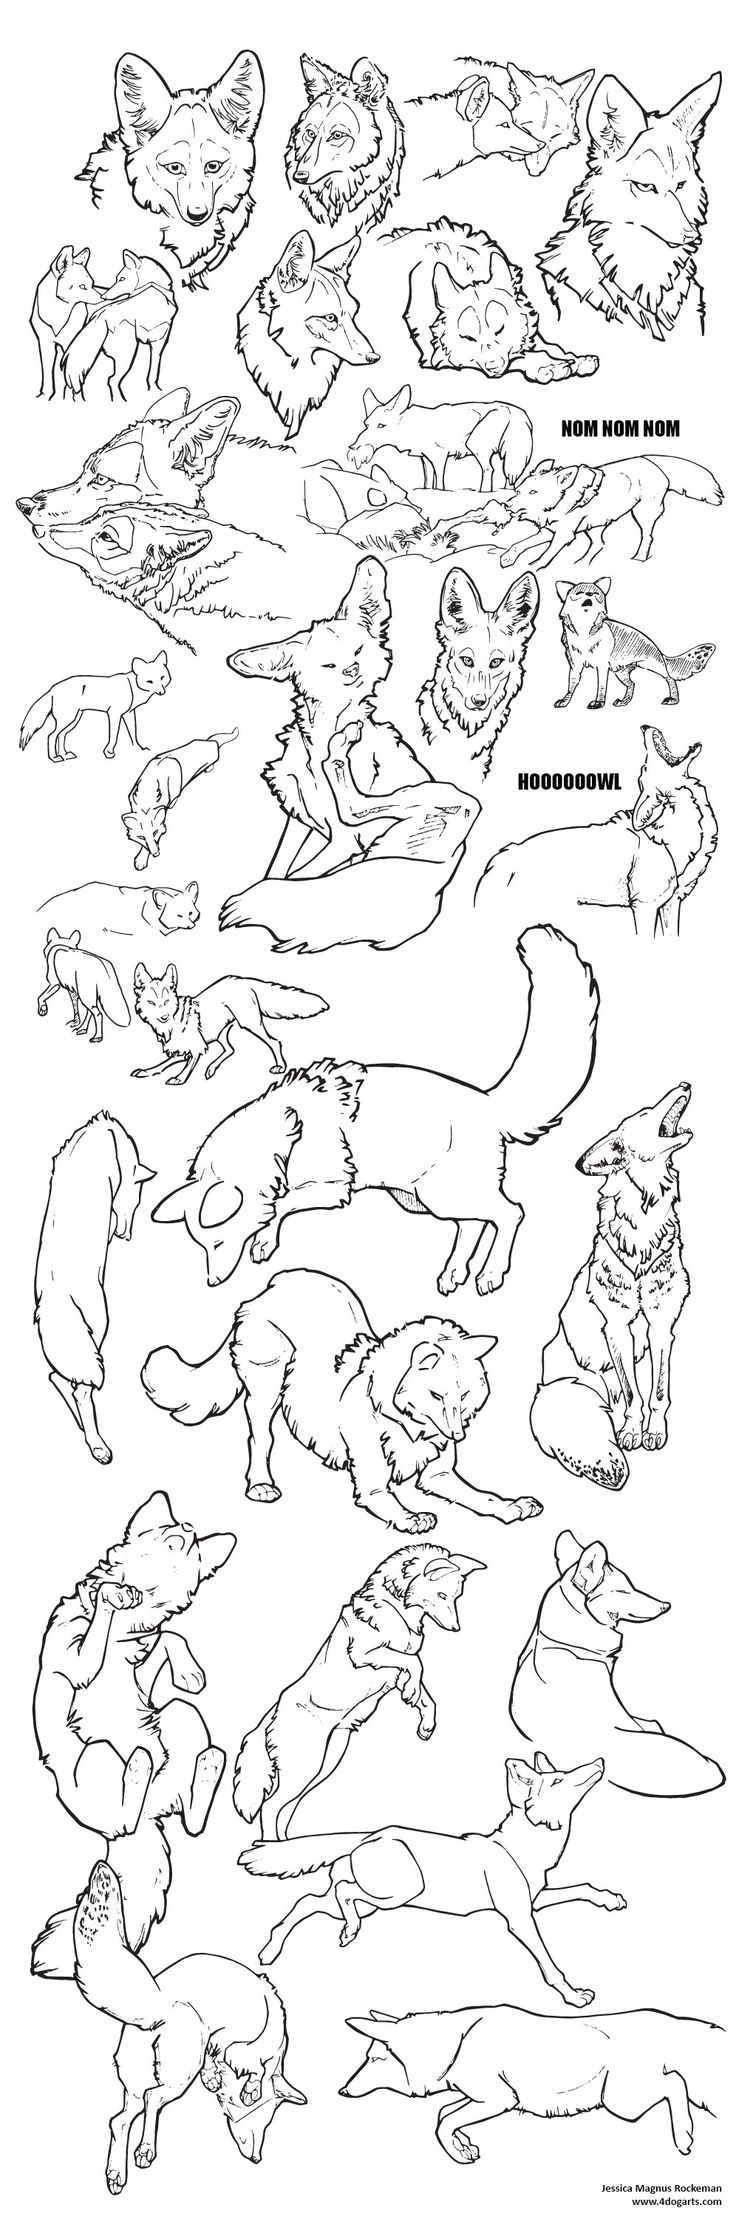 coyote sketches